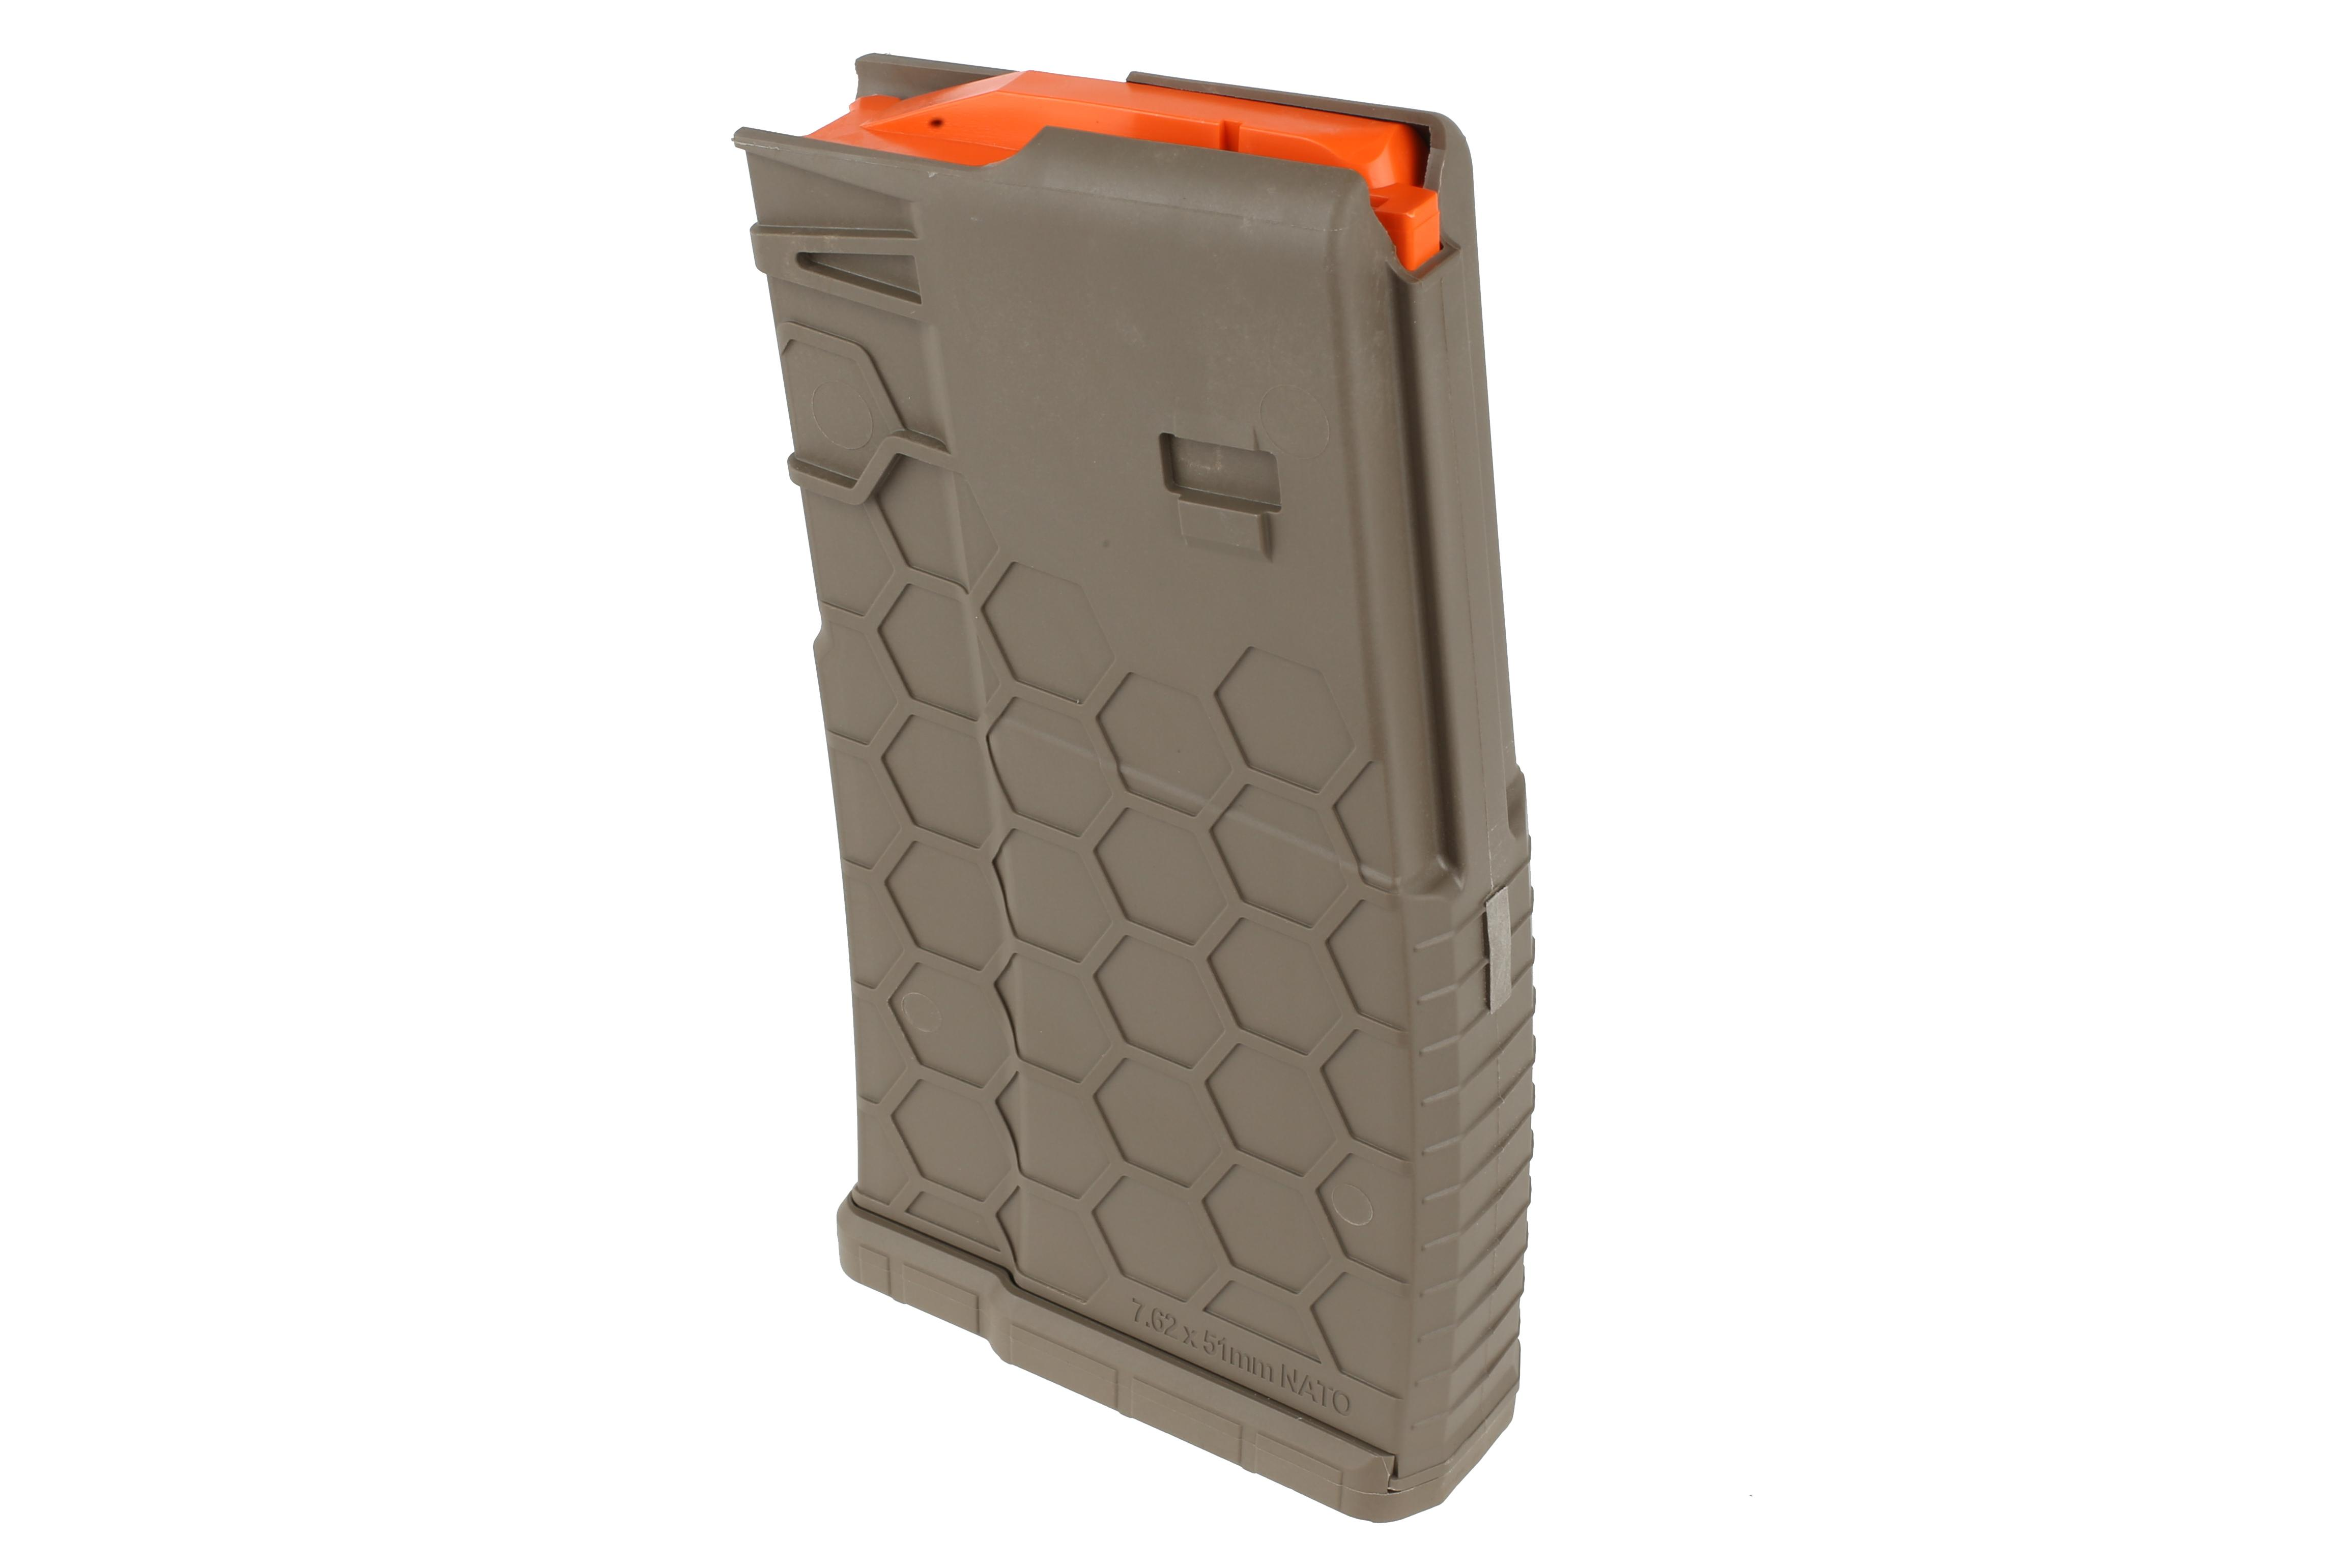 Hexmag 20-Round .308 Magazine - Series 2 - Flat Dark Earth